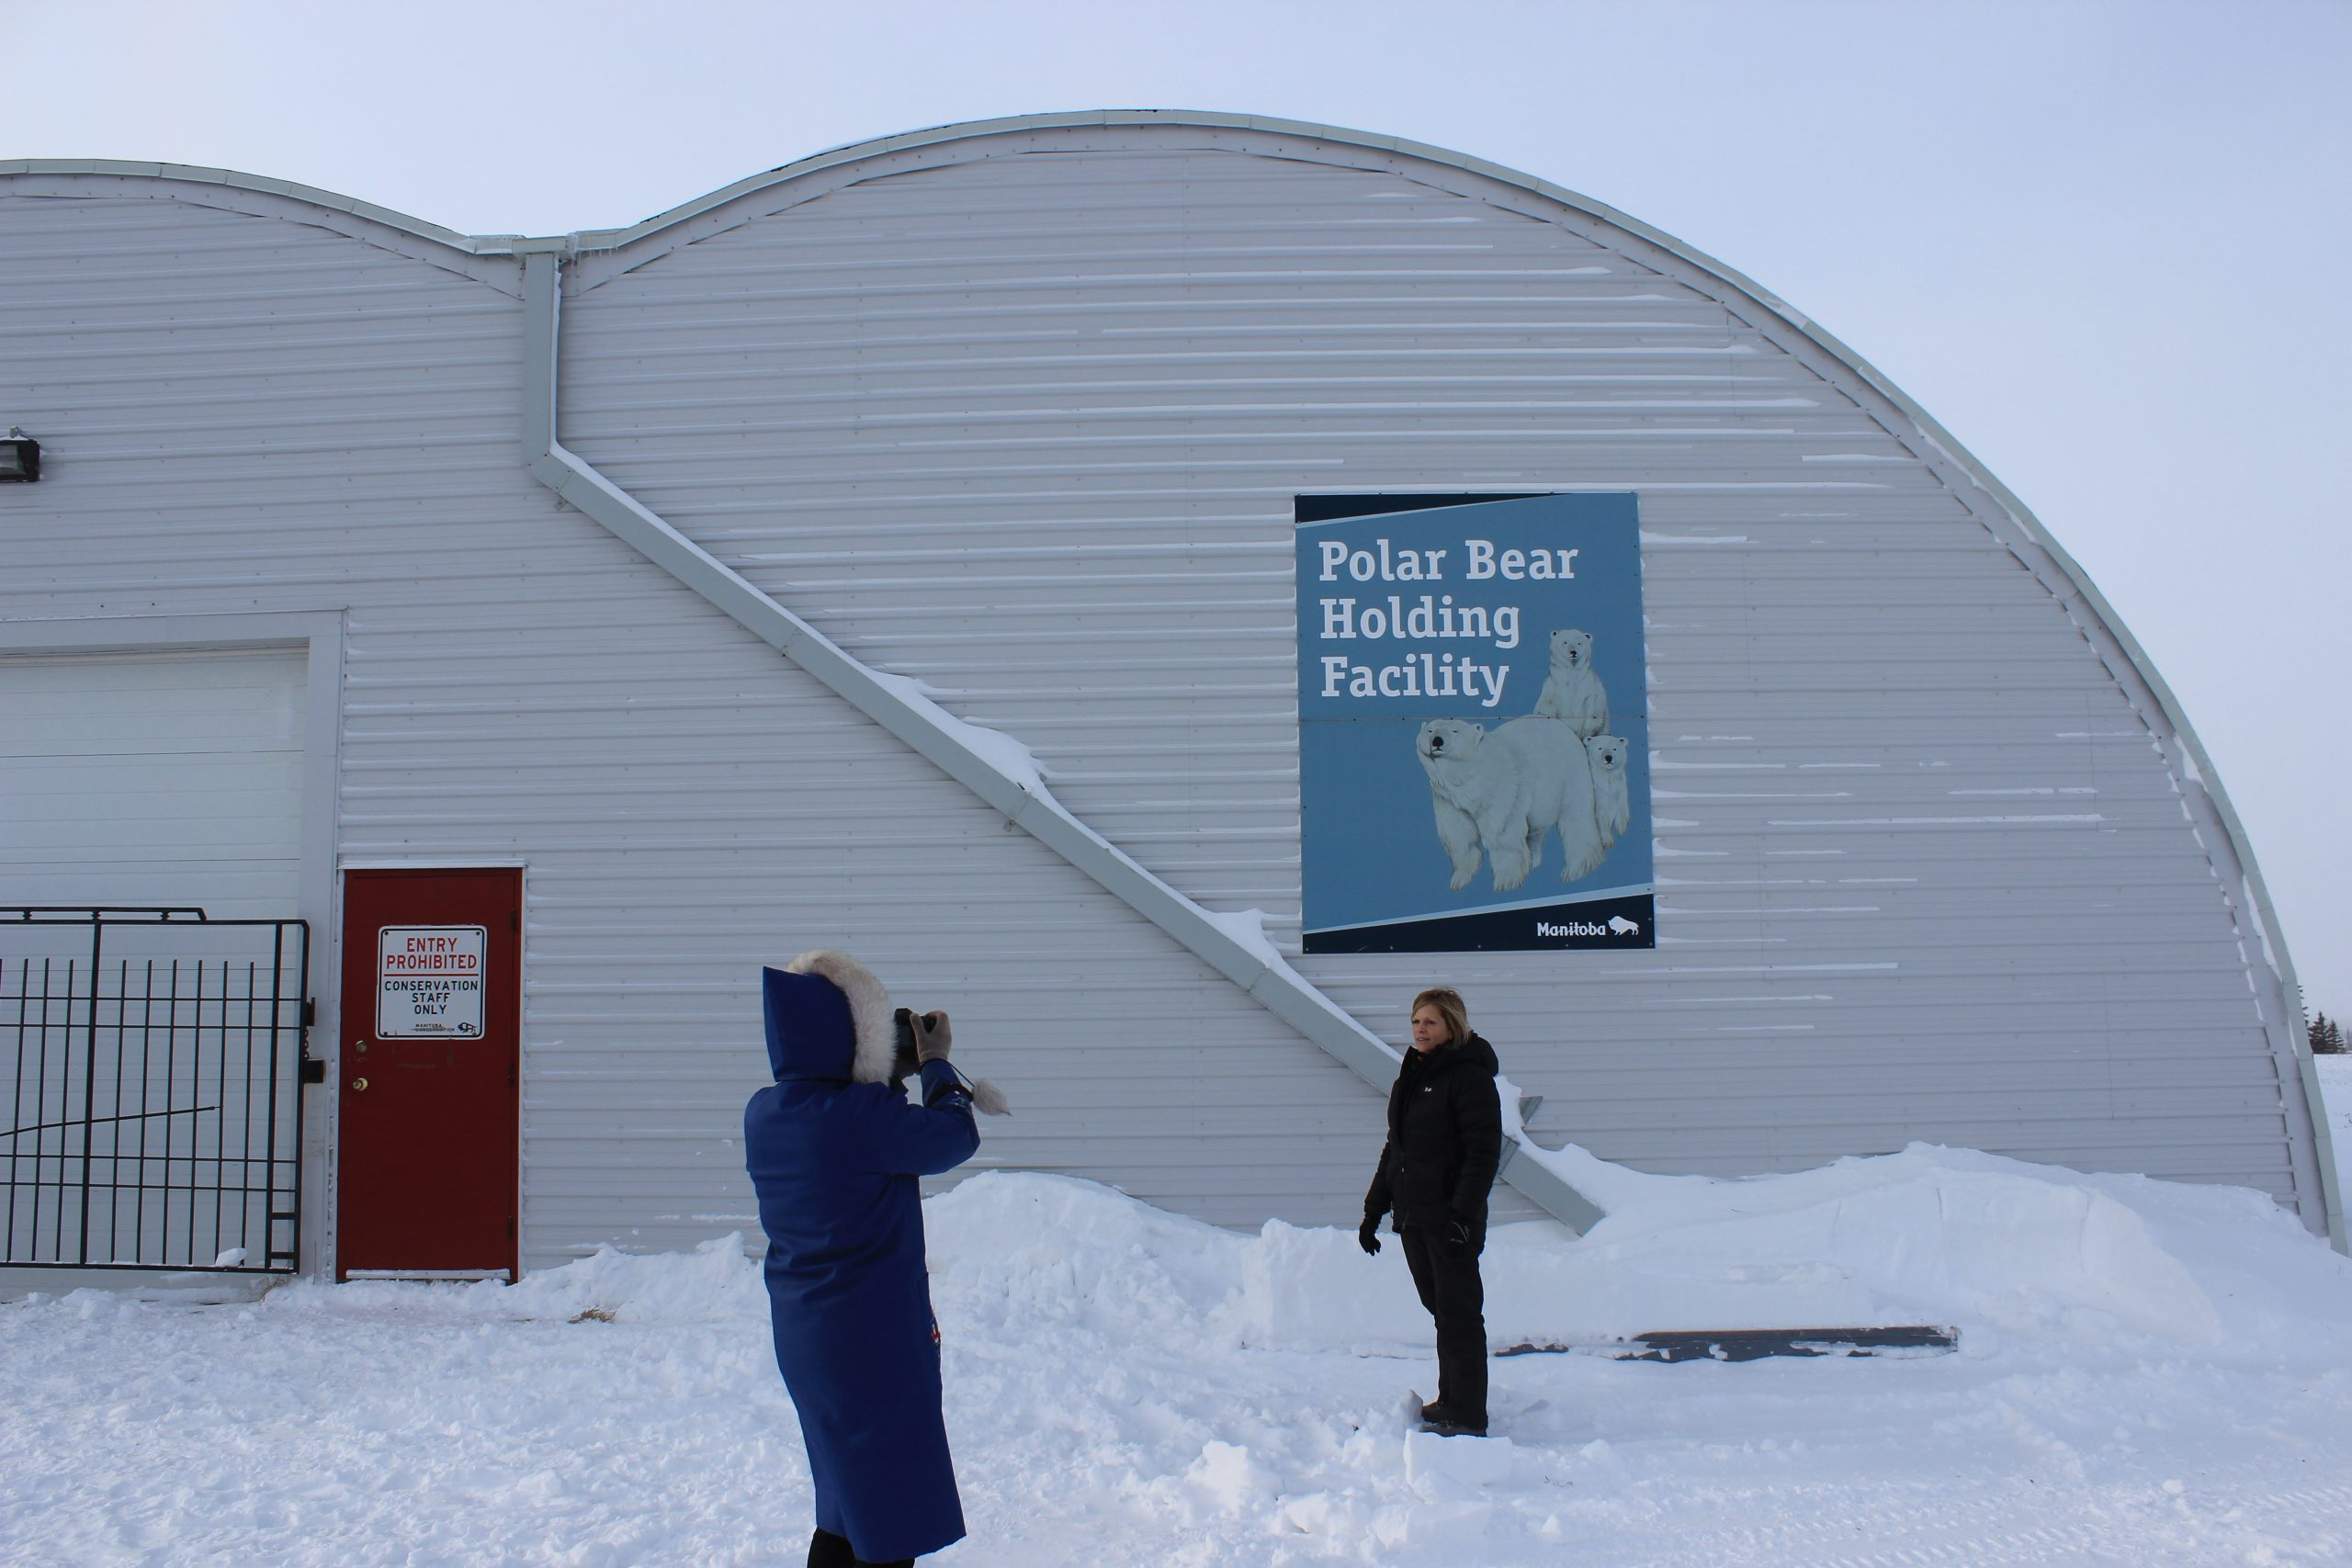 76068fbada26d The Polar Bear Holding Facility. Humans cannot enter